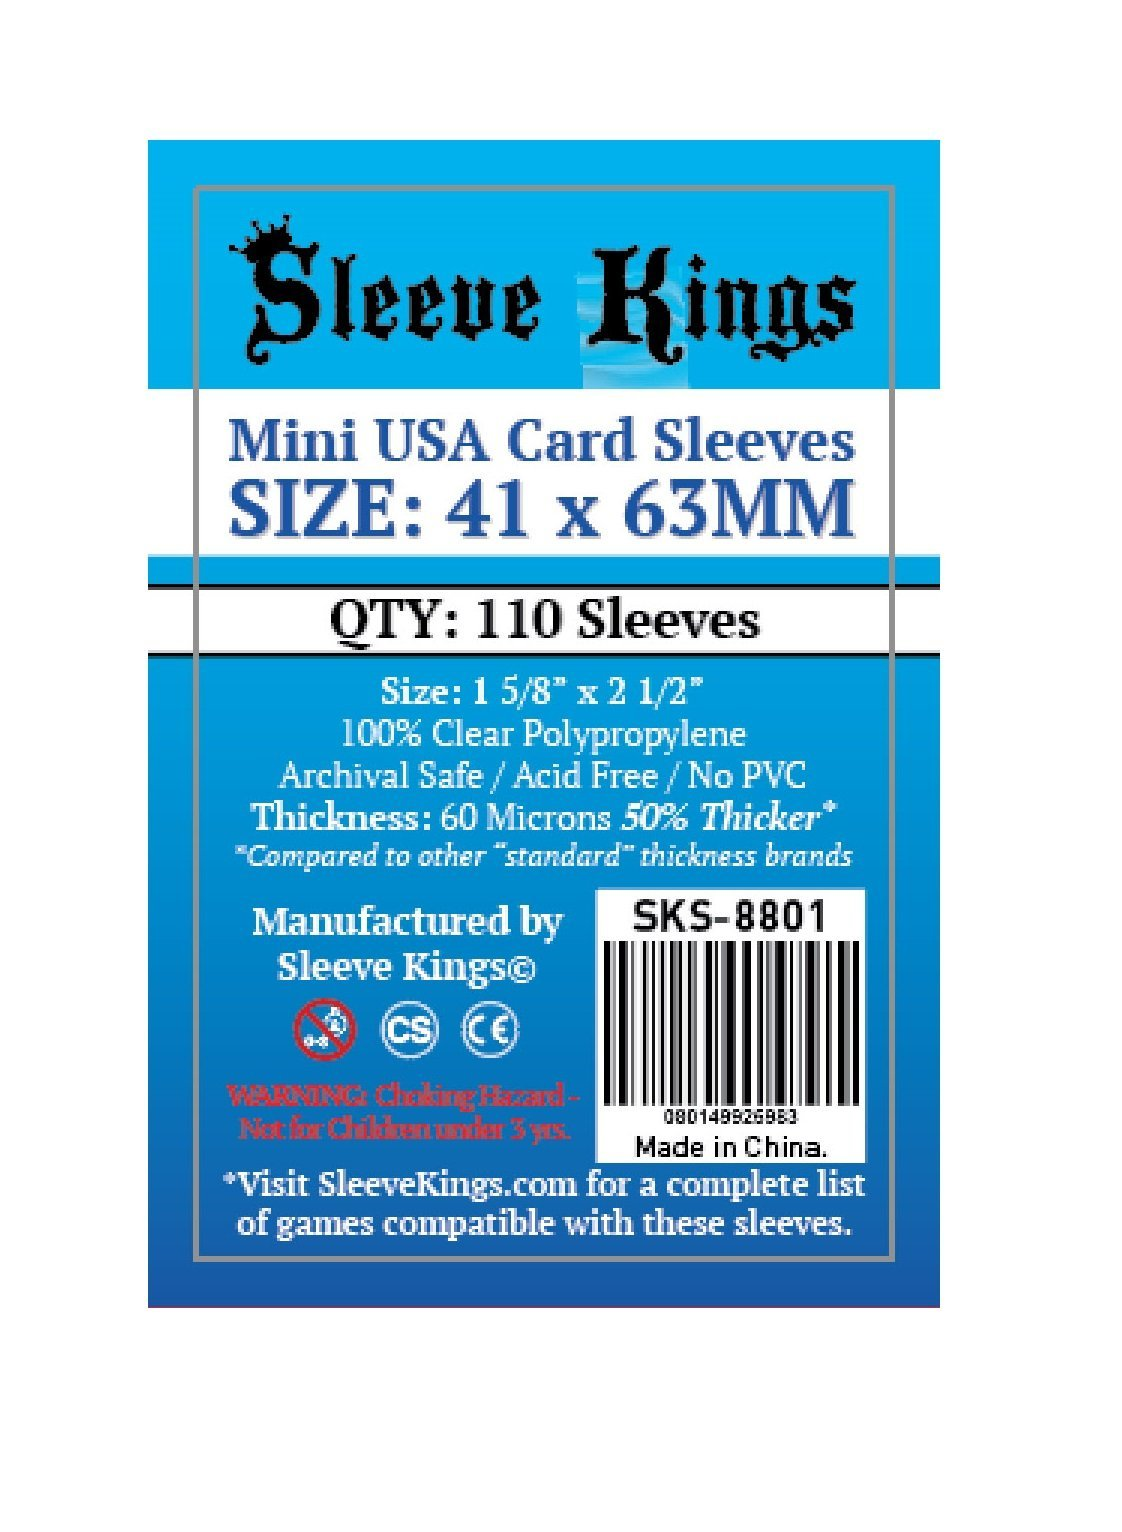 Bored Game Company is the best place to buy Sleeve Kings Mini USA Card Sleeves (41x63mm) - 110 Pack, 60 Microns in India.